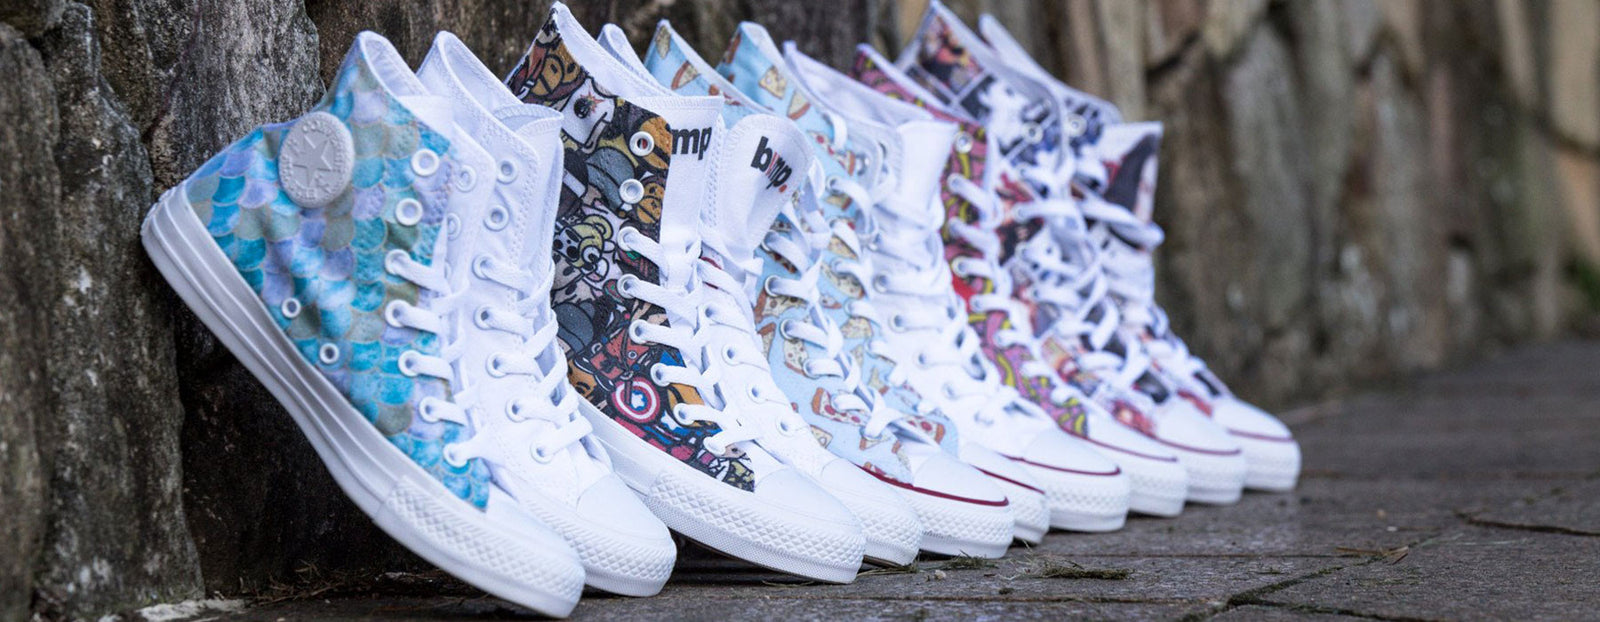 Bump Shoes | Personalised & Custom Converse Chuck Taylor Shoes